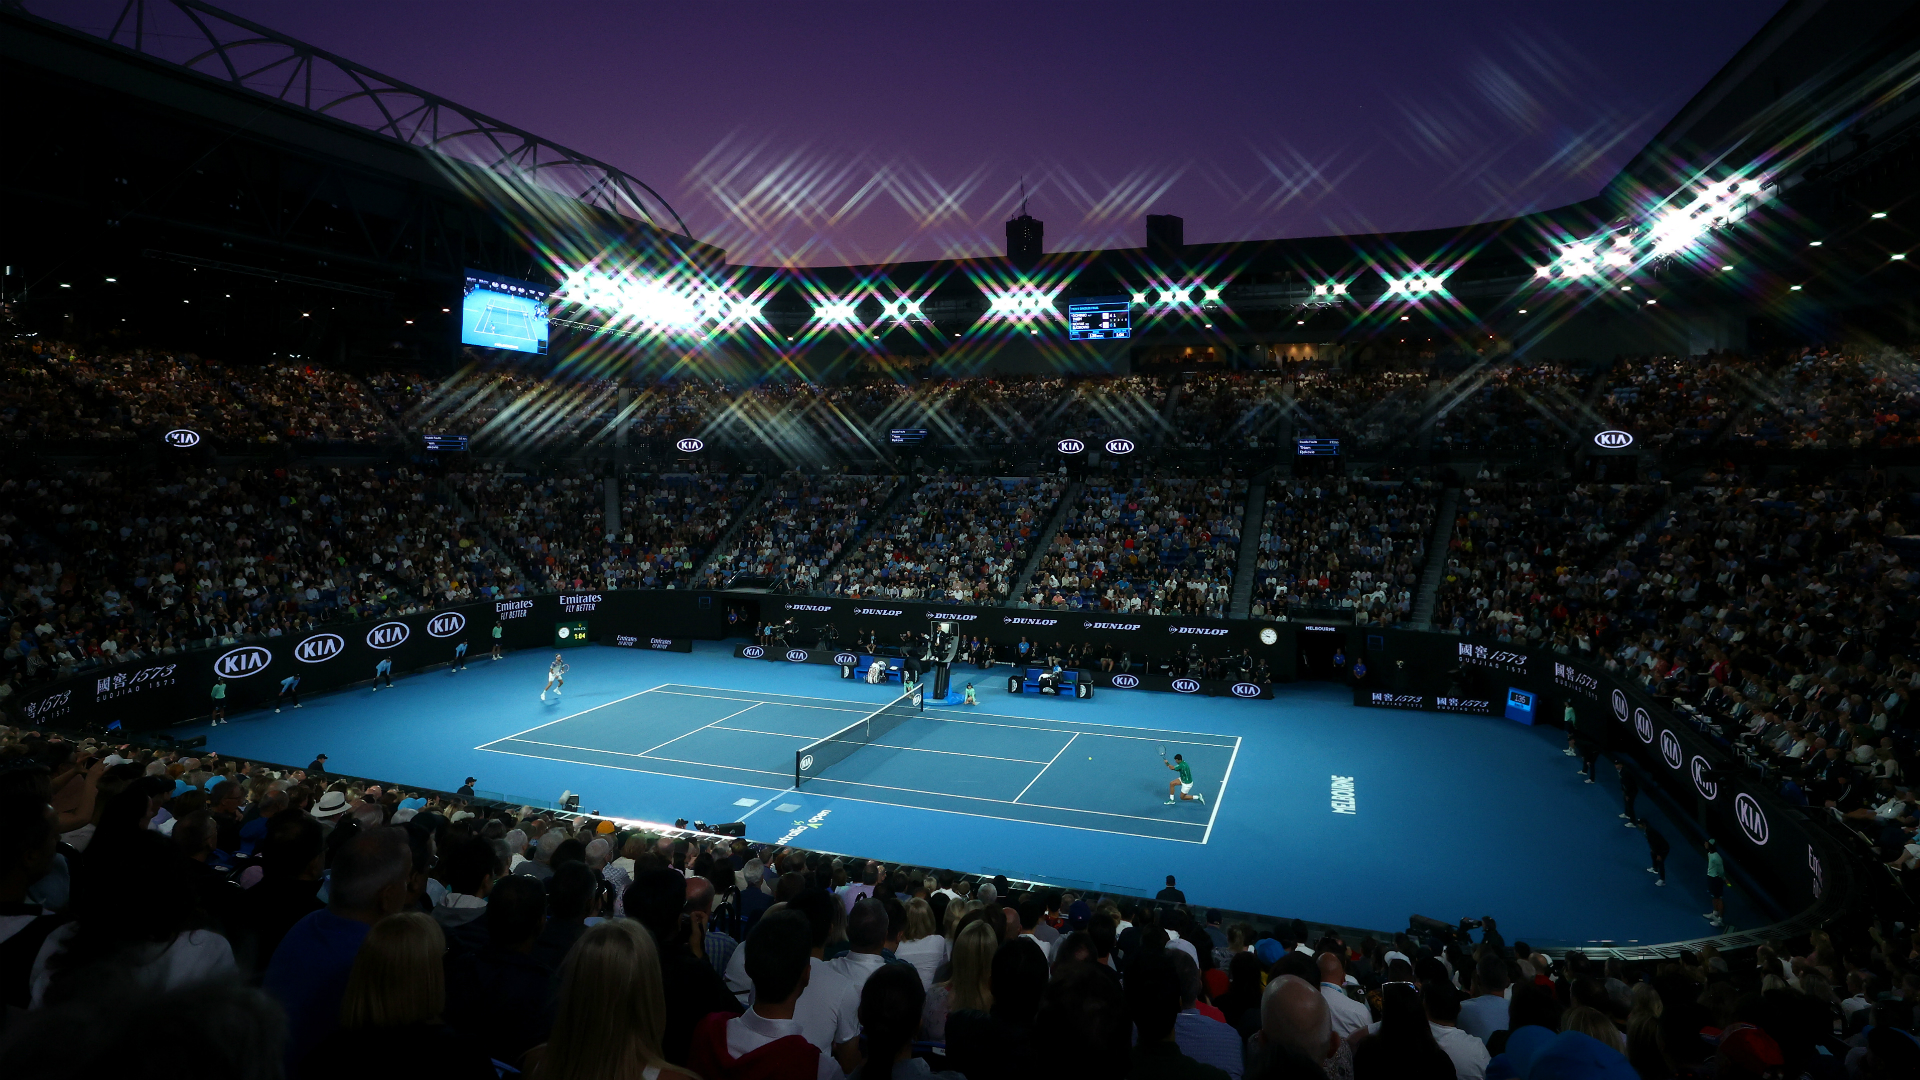 Next year's Australian Open is set to be delayed by a week or two.